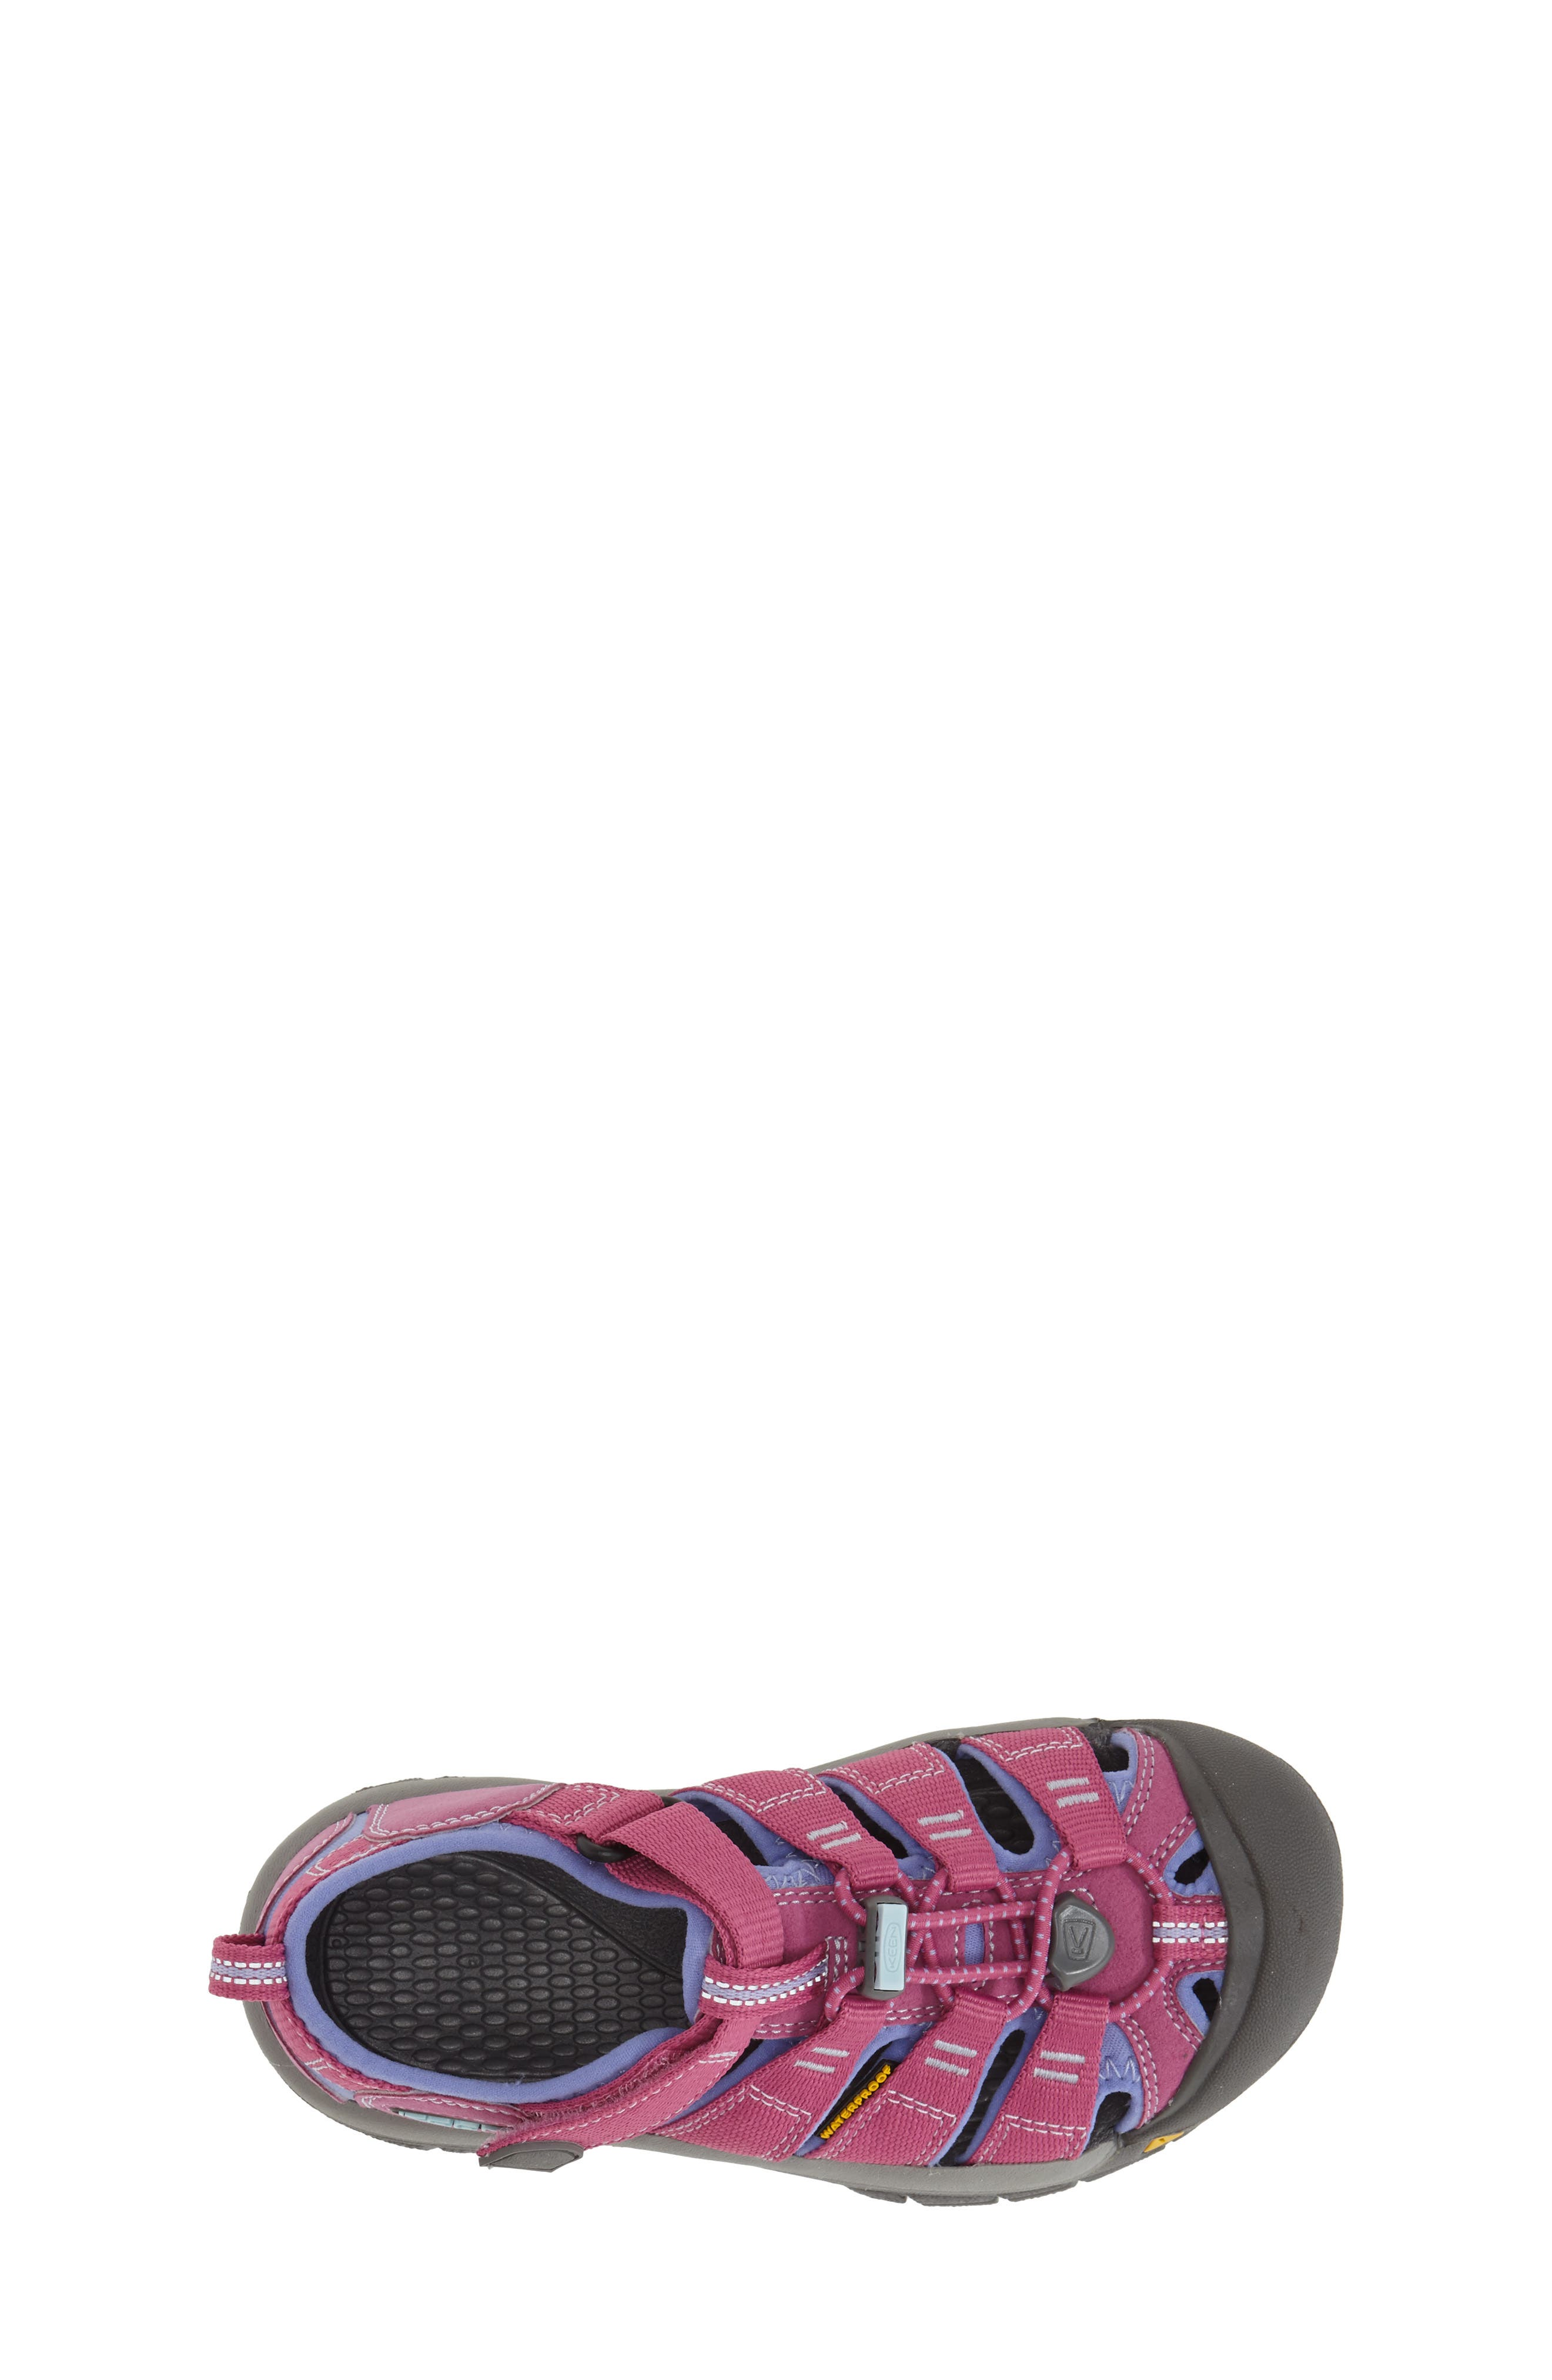 ,                             'Newport H2' Water Friendly Sandal,                             Alternate thumbnail 396, color,                             503